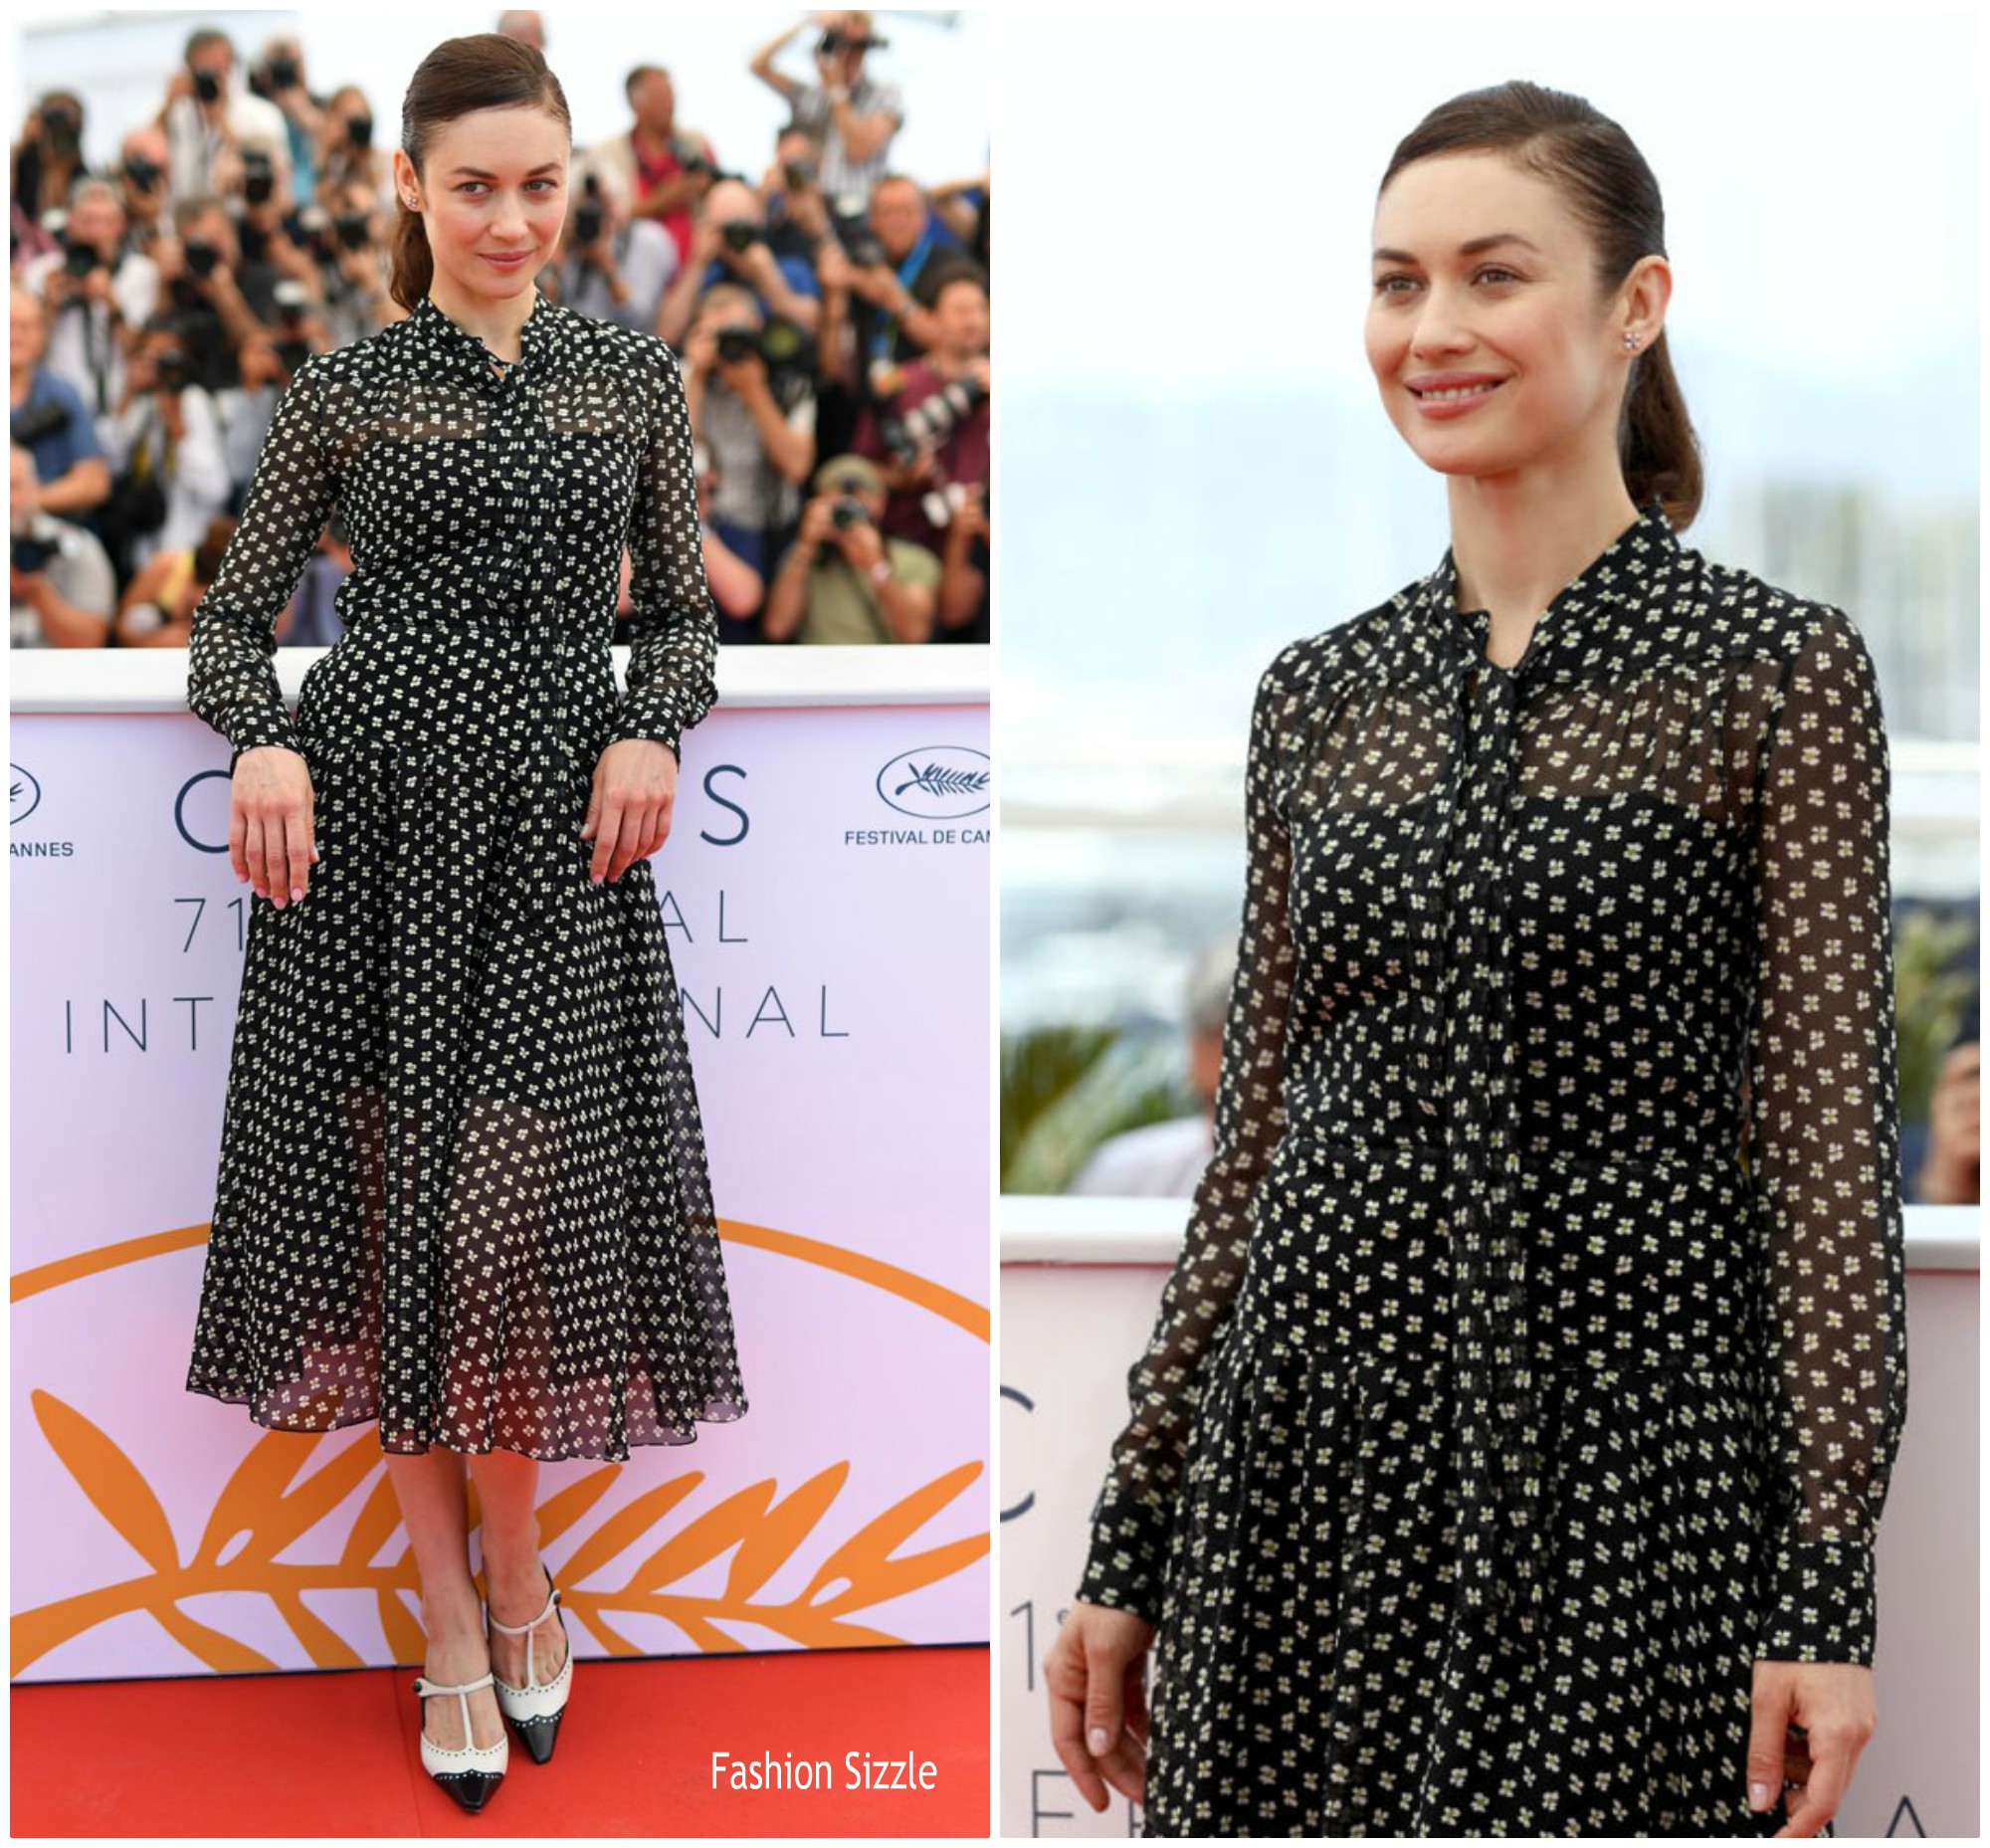 olga-kurylenko-in-christian-dior-the-man-who-killed-don-quixote-cannes-film-festival-photocall